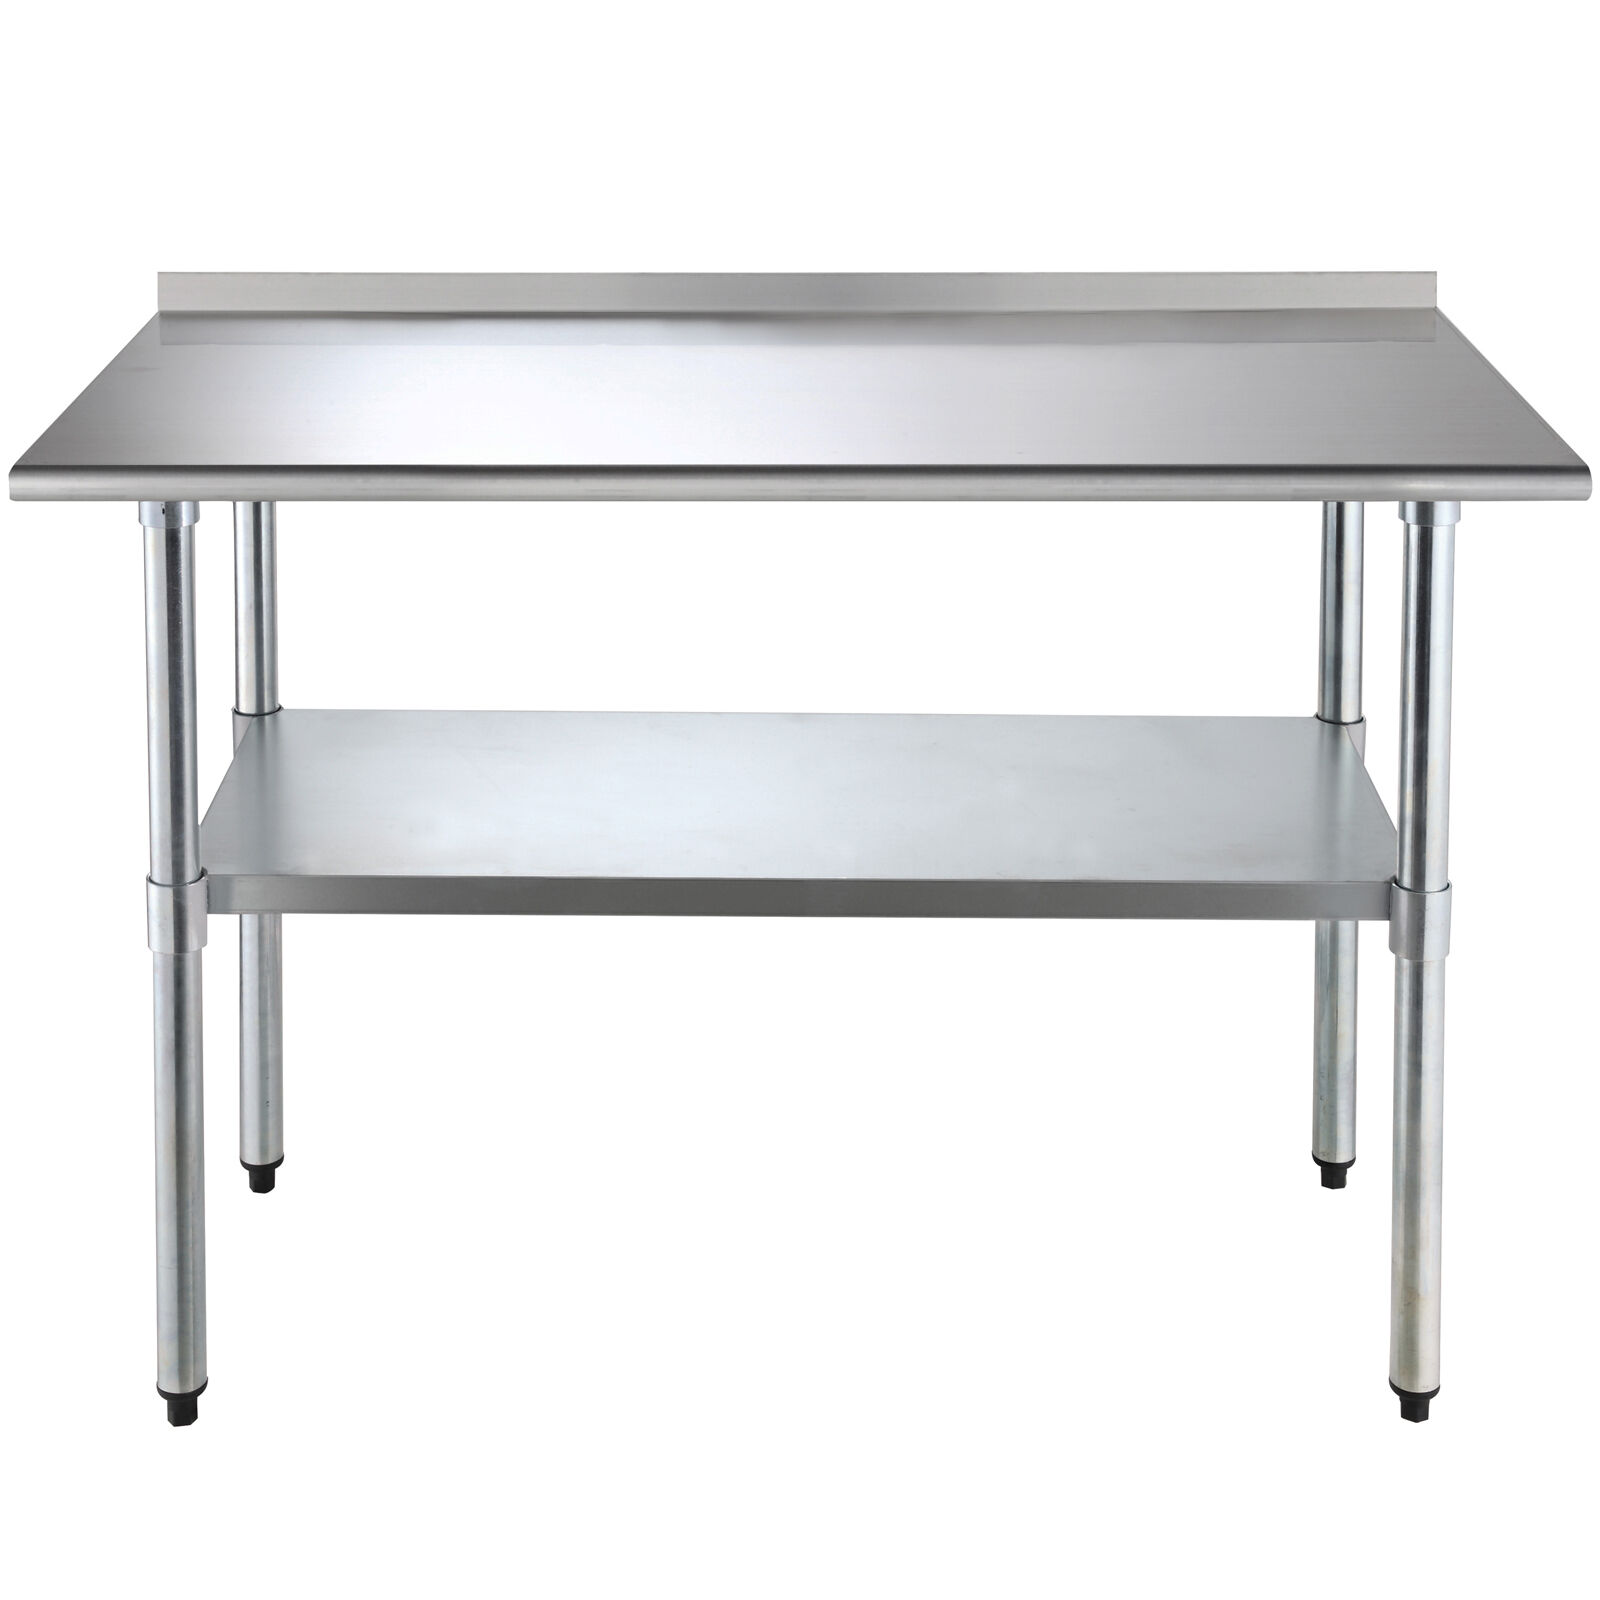 "24"" x 48"" Stainless Steel Work Prep Table Kitchen Restaurant w"